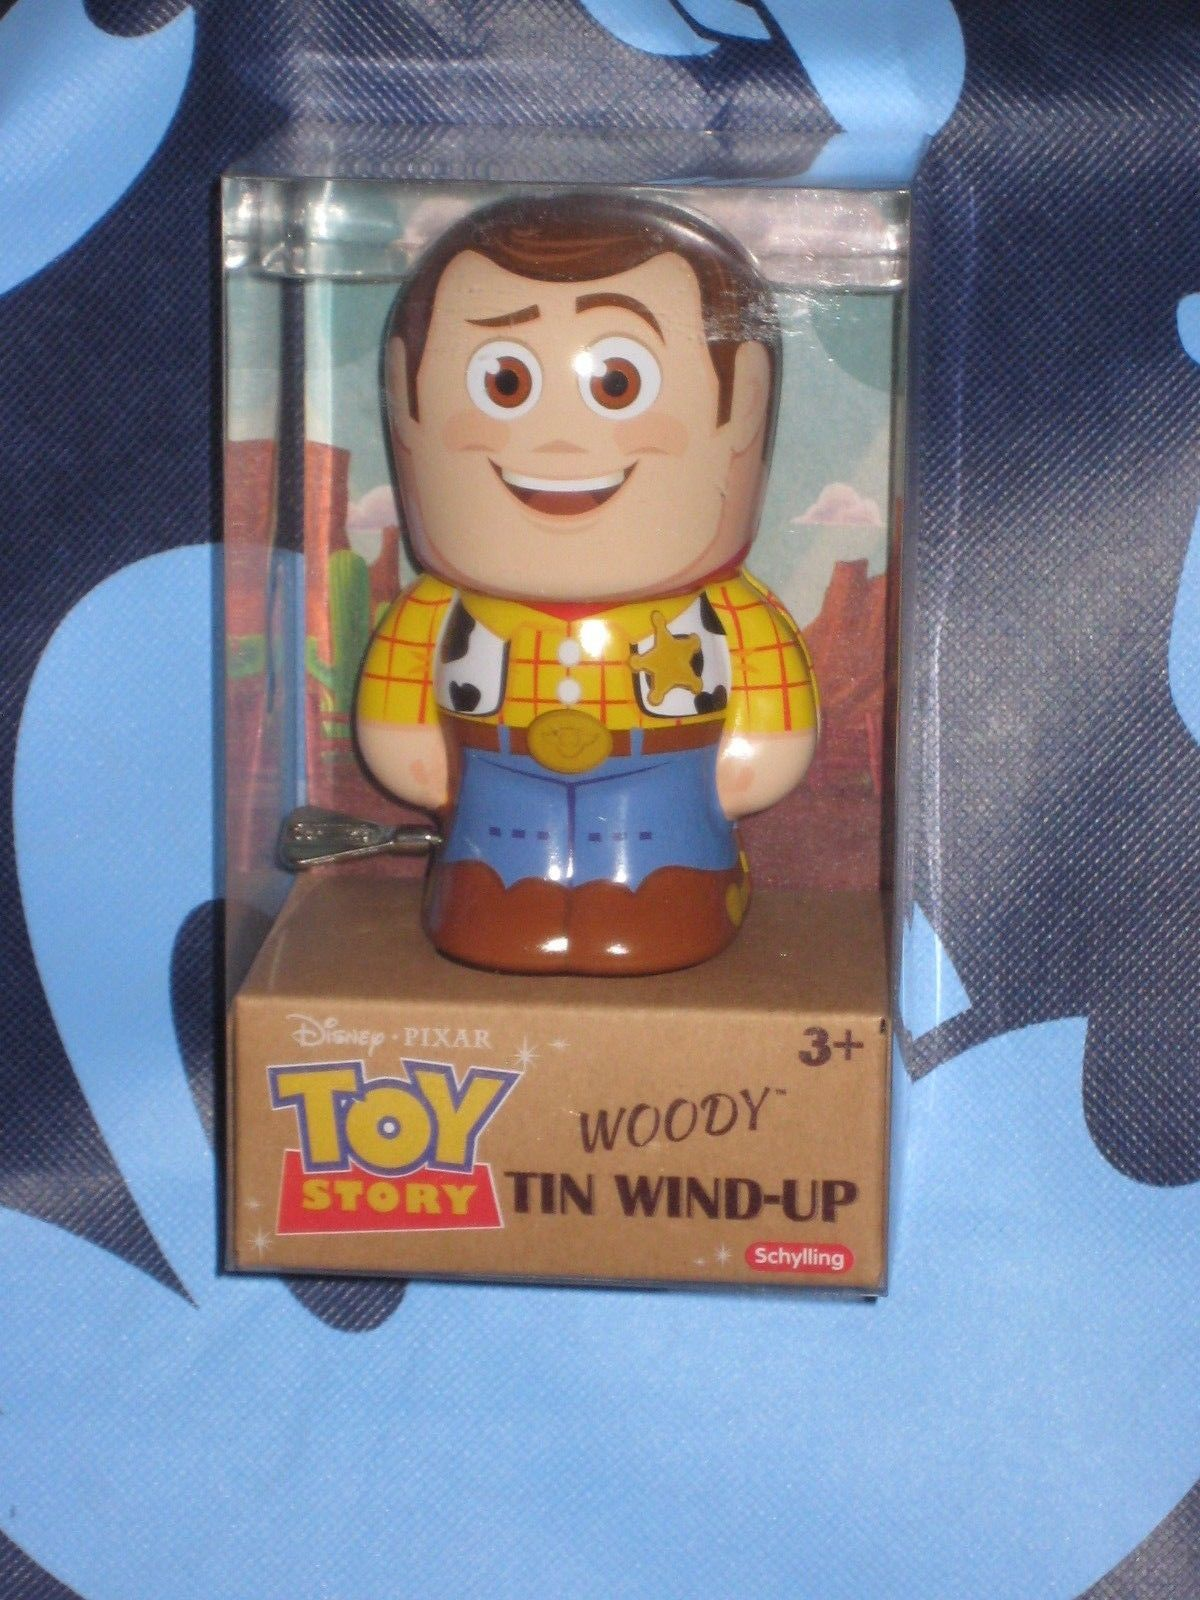 Woody Disney Pixar Toy Story Tin Wind Up. Brand New. 4 inches tall.